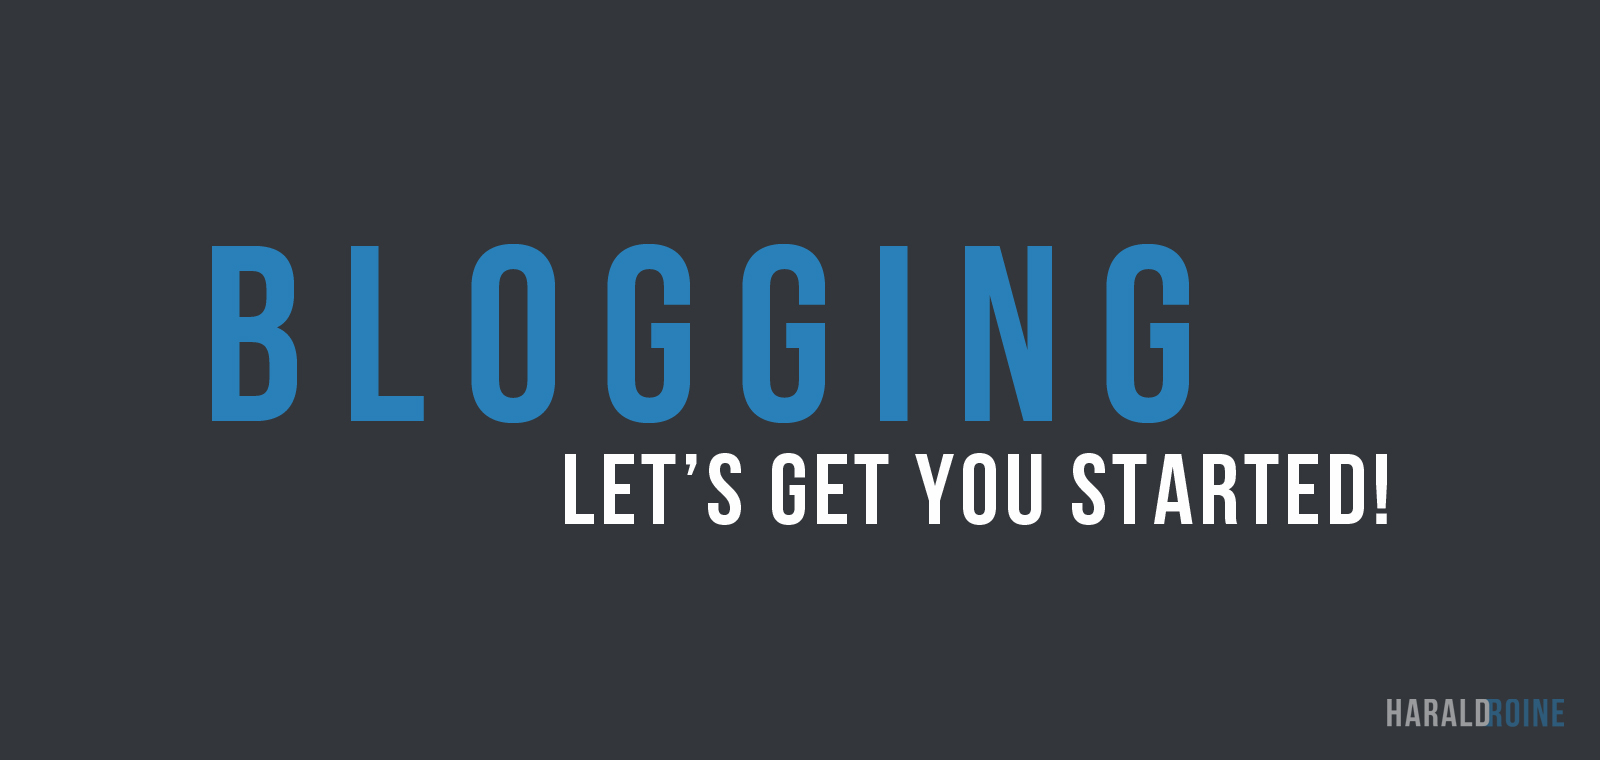 Blogging: Let's Get You Started!